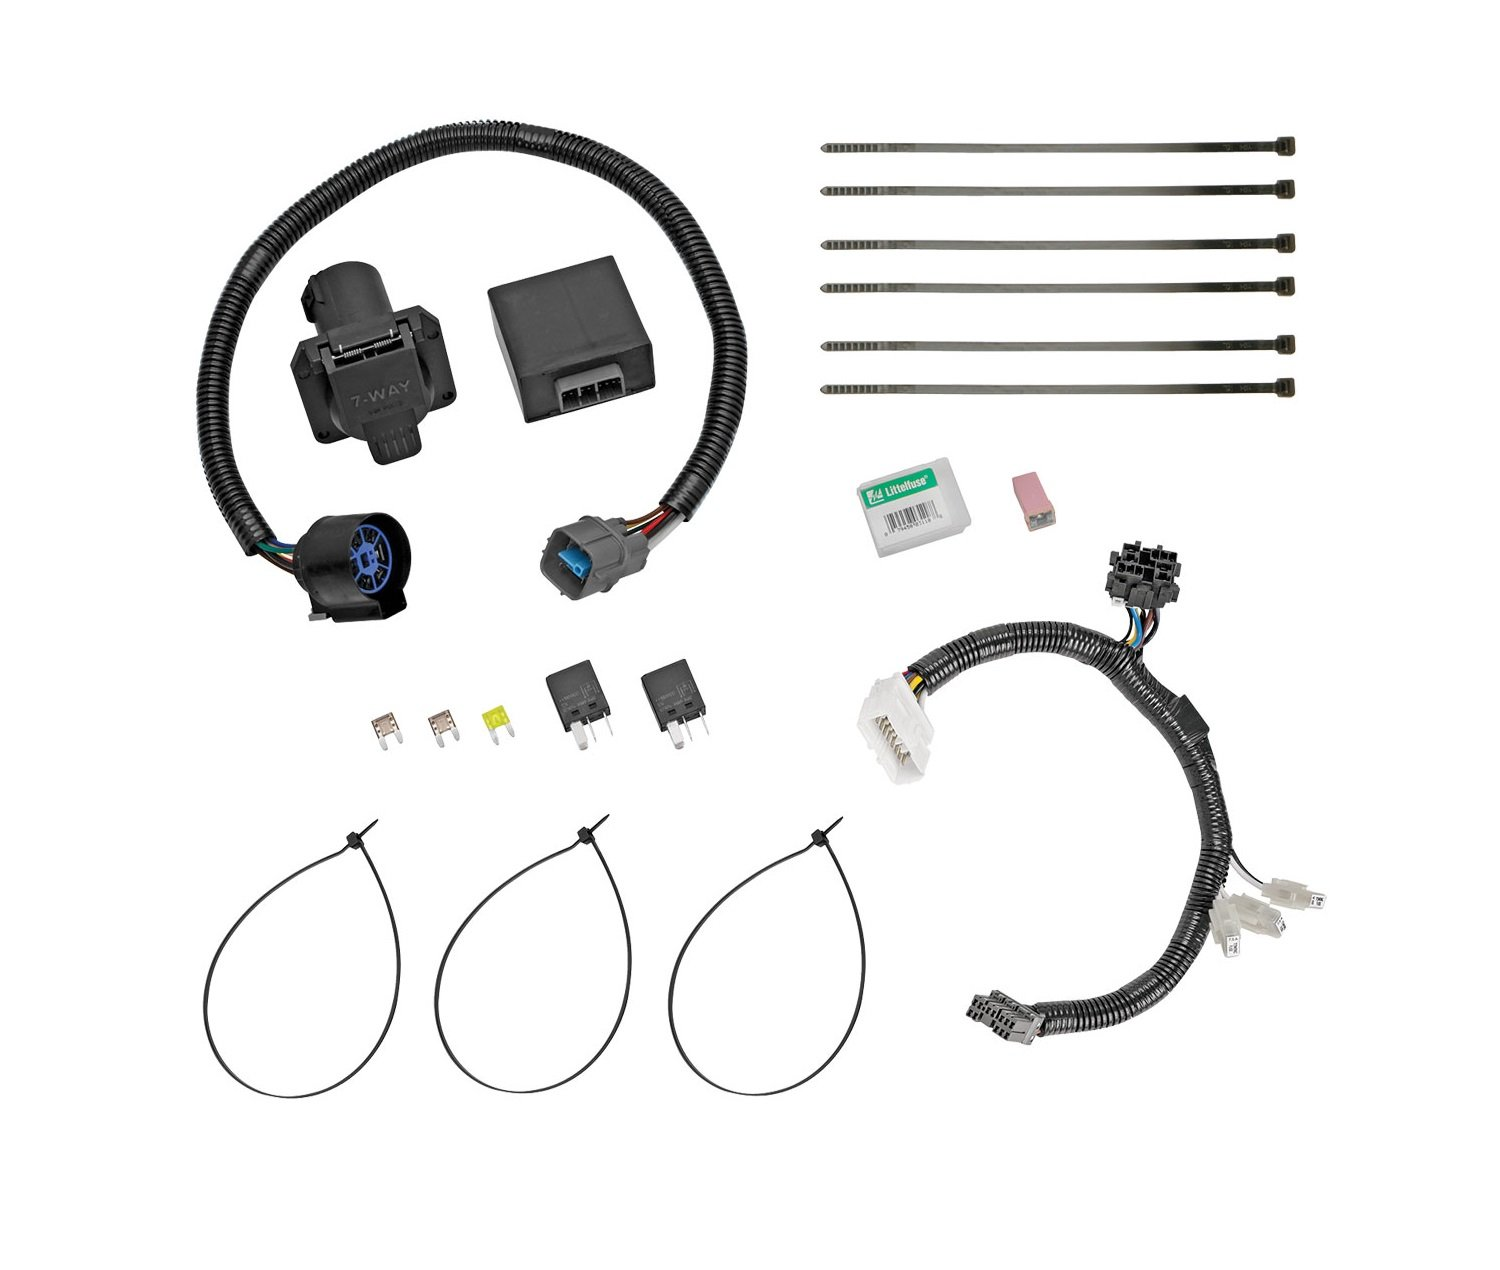 Amazon.com: Tow Ready 118265 Trailer Wiring Connector Kit for Honda on tow license plate bracket, tow cable, tow lights,